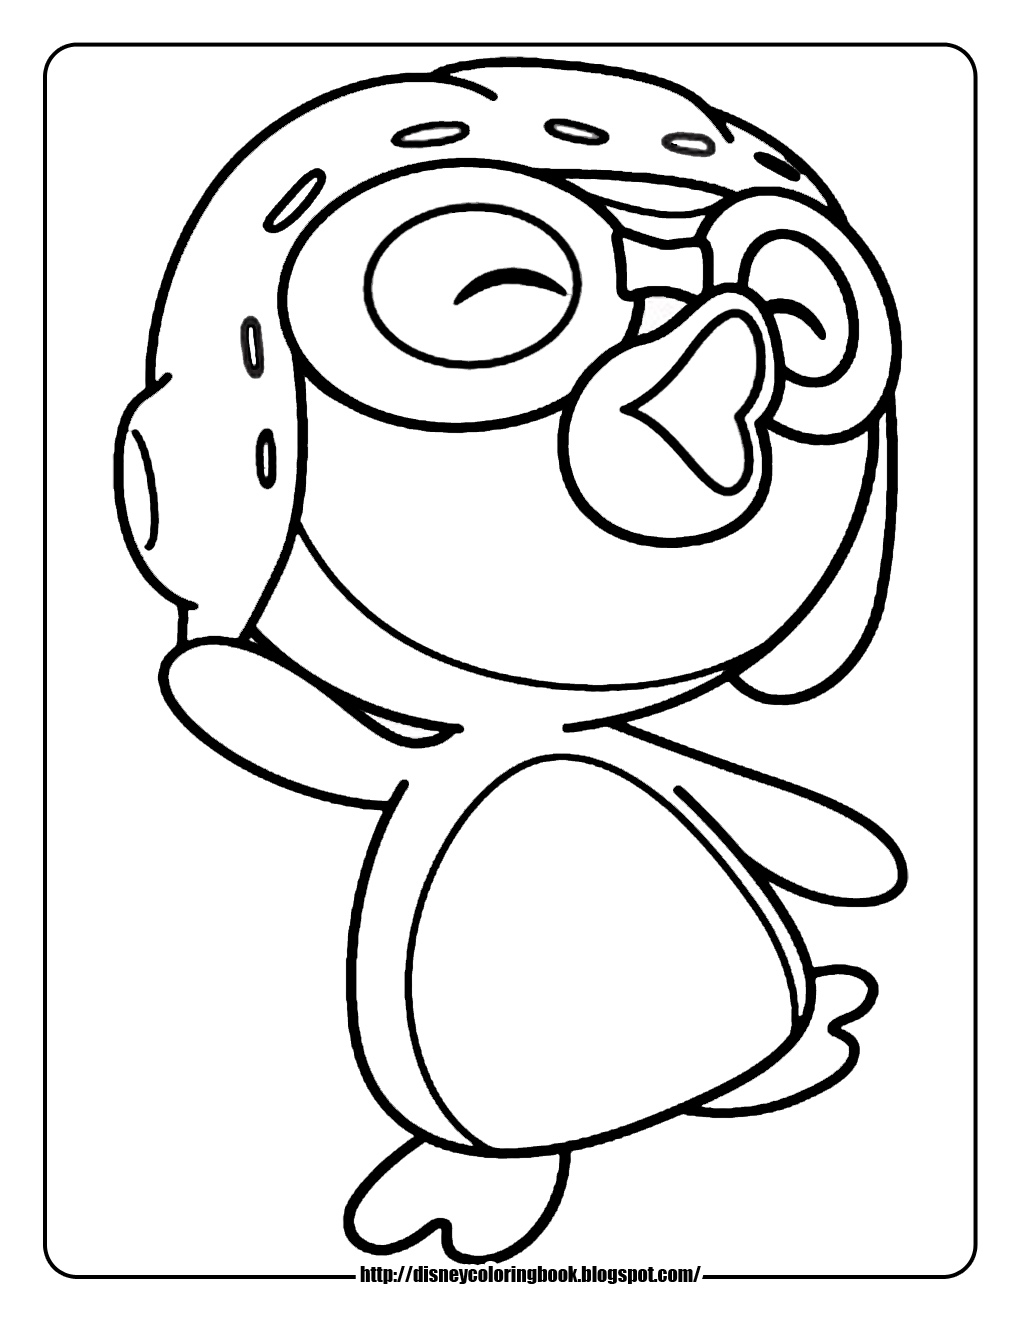 free printable coloring pages penguin - photo#32